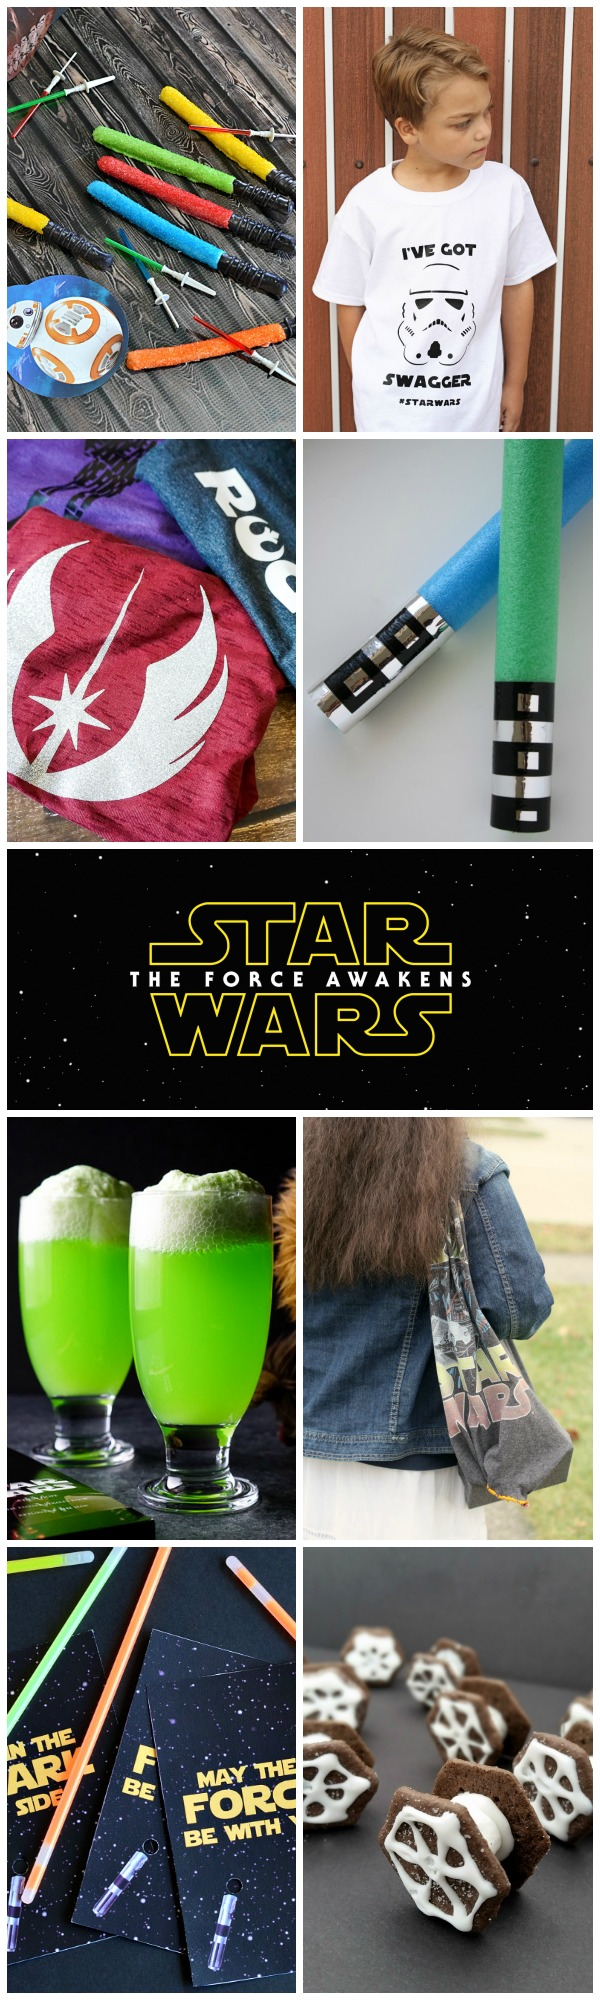 Awesome Star Wars Ideas - recipes, crafts and more! | The Love Nerds